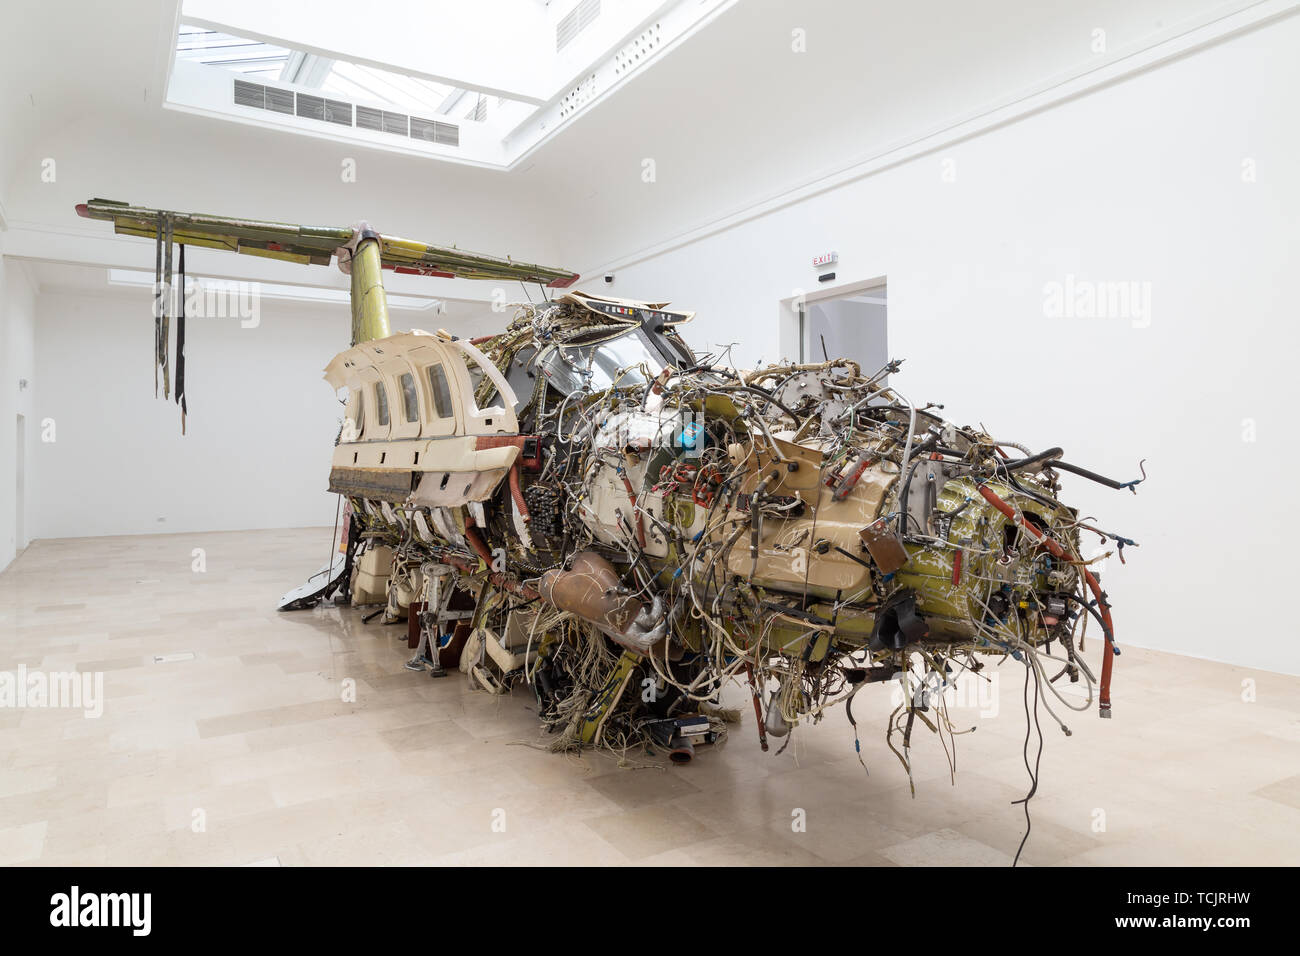 Venice Italy - May 25, 2019: Biennale Arte 2019 Flight by Troman Stanczak is a surrealist sculpture an inside-out luxury private aircraft. - Stock Image